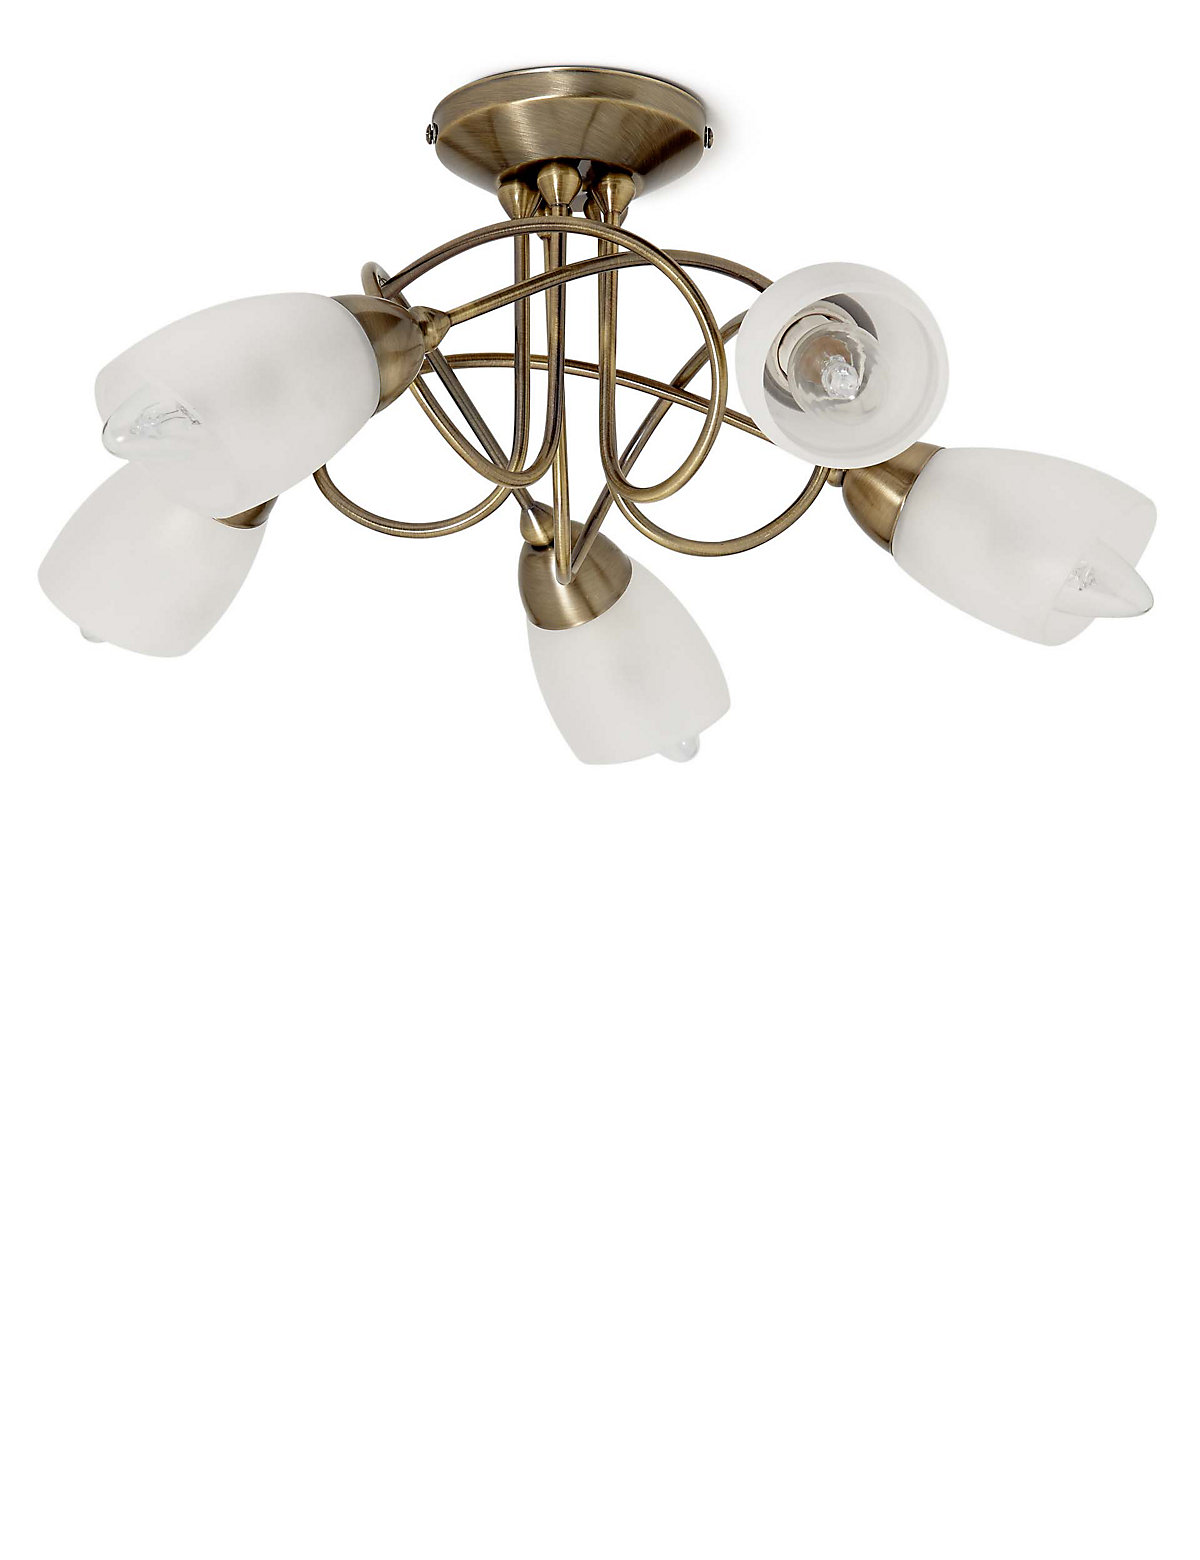 Marks Amp Spencer Catalogue Lighting From Marks Amp Spencer At Mycatalogues Com